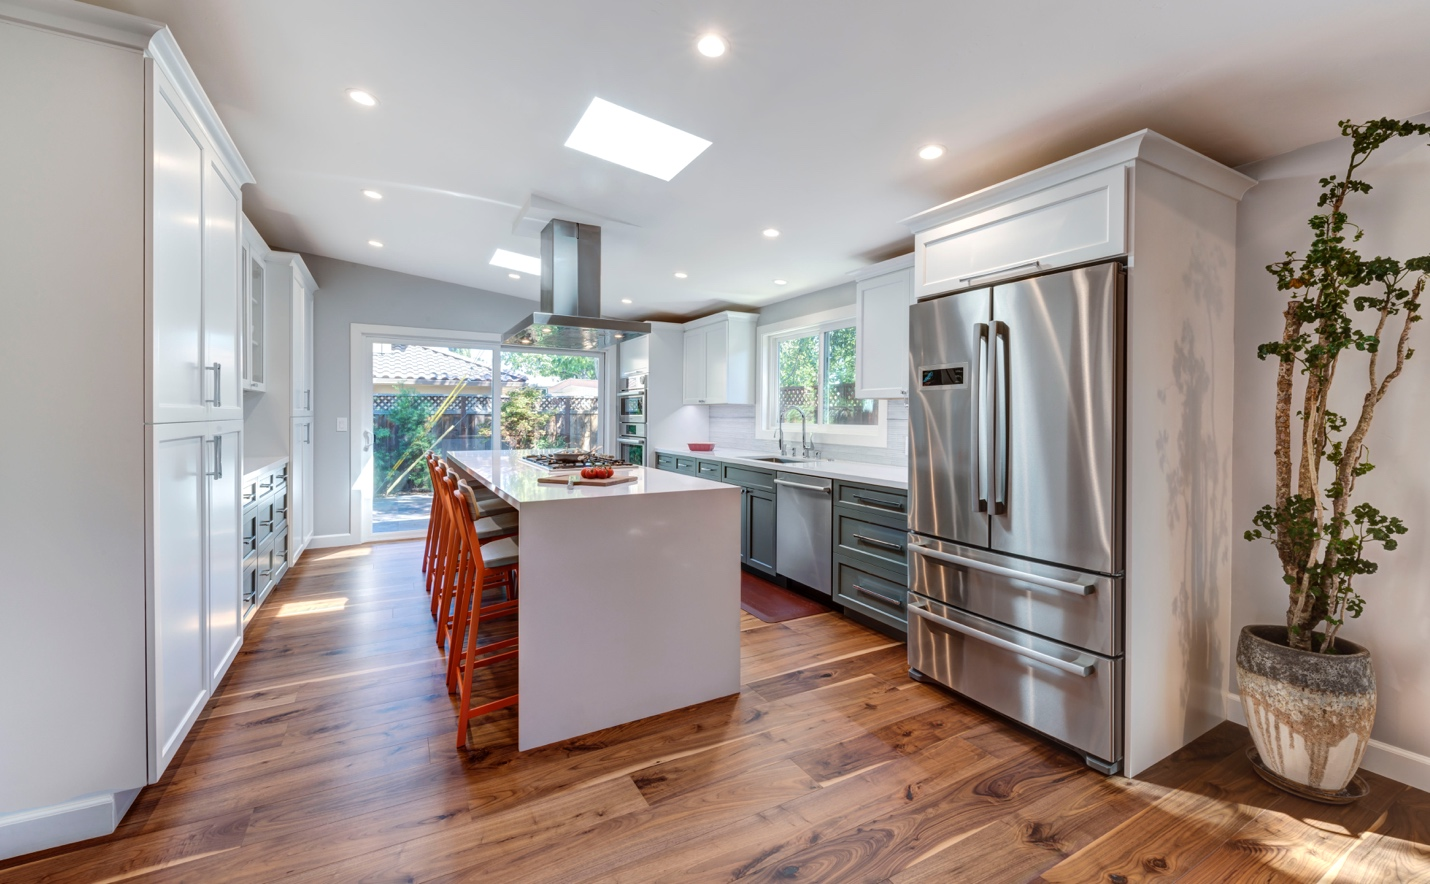 Modern large kitchen, interior design, architect work, Sunnyvale